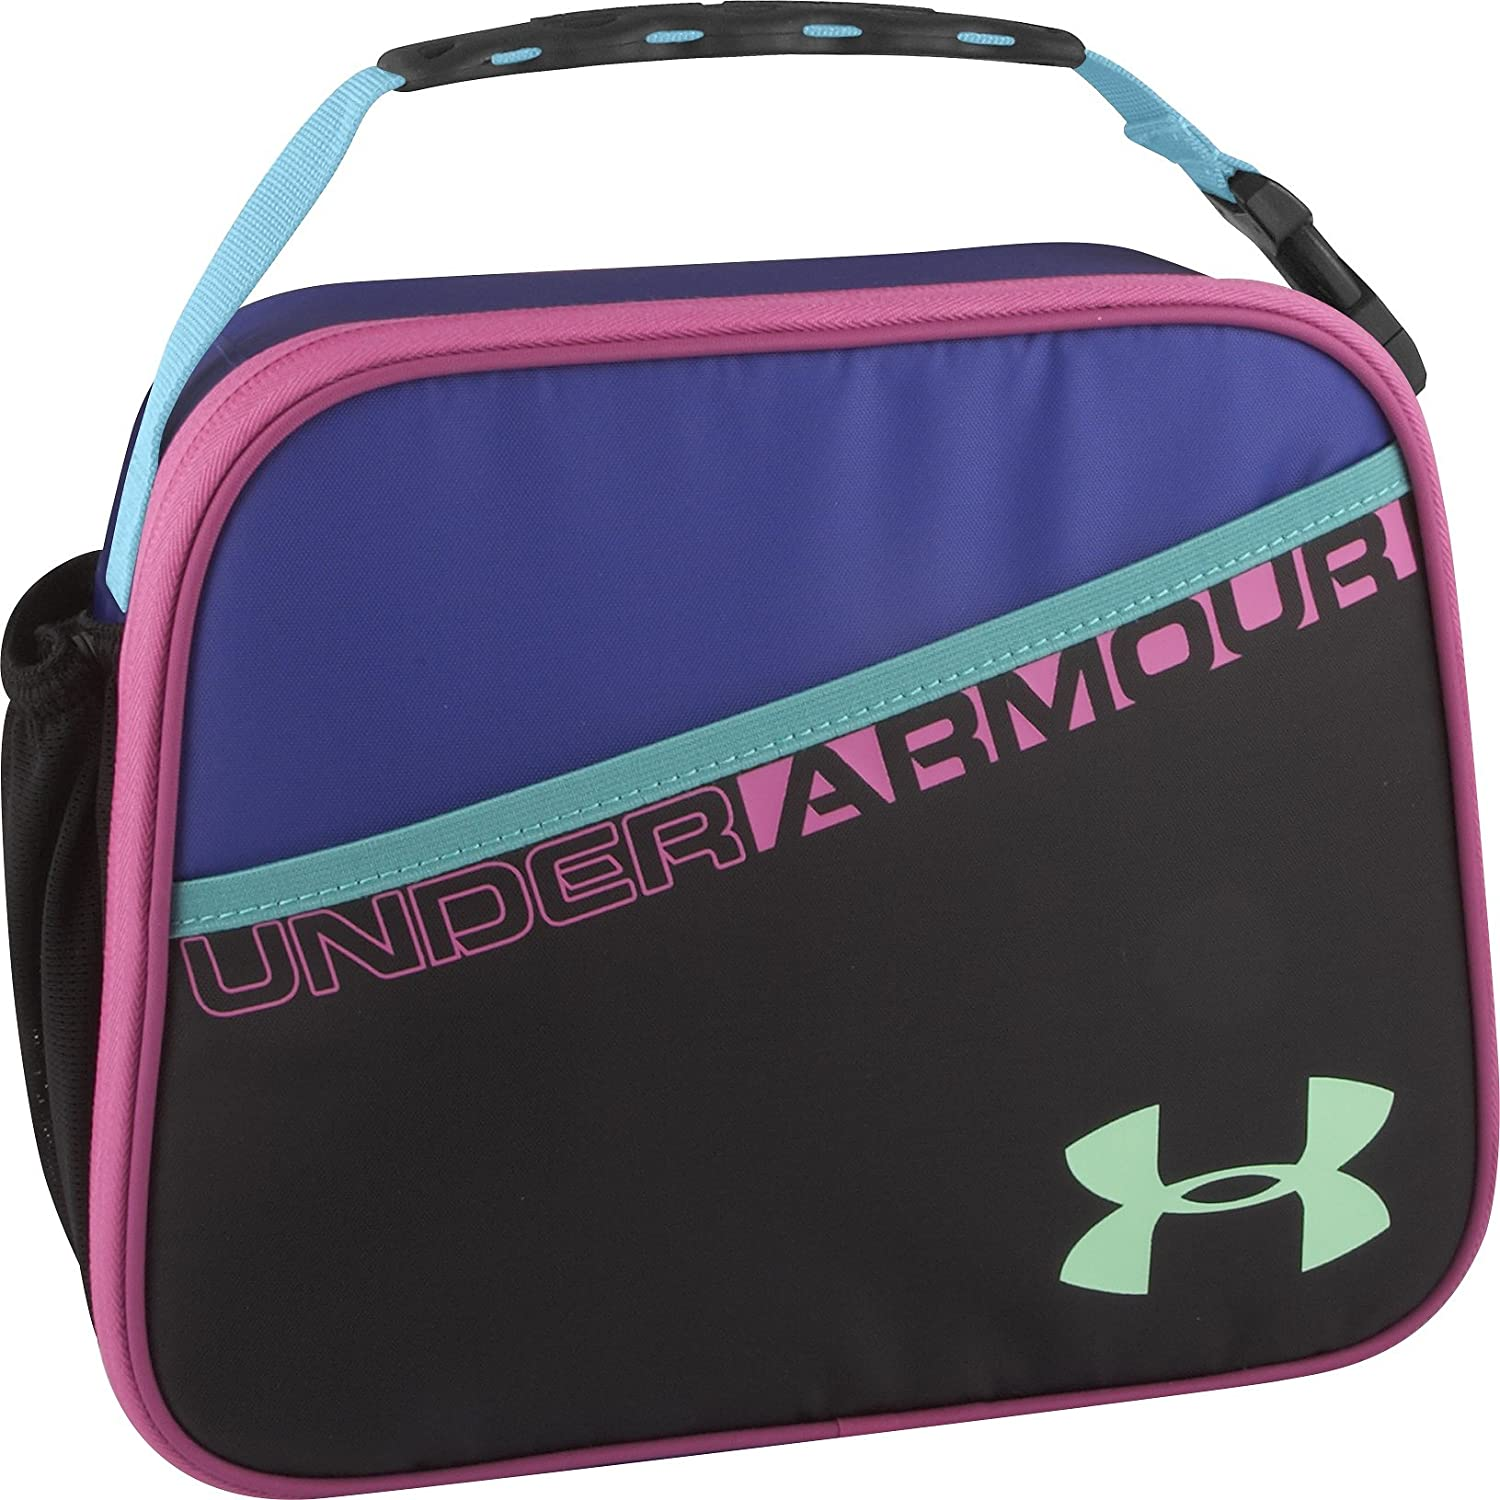 Under Armour Lunch Cooler, Black K45563